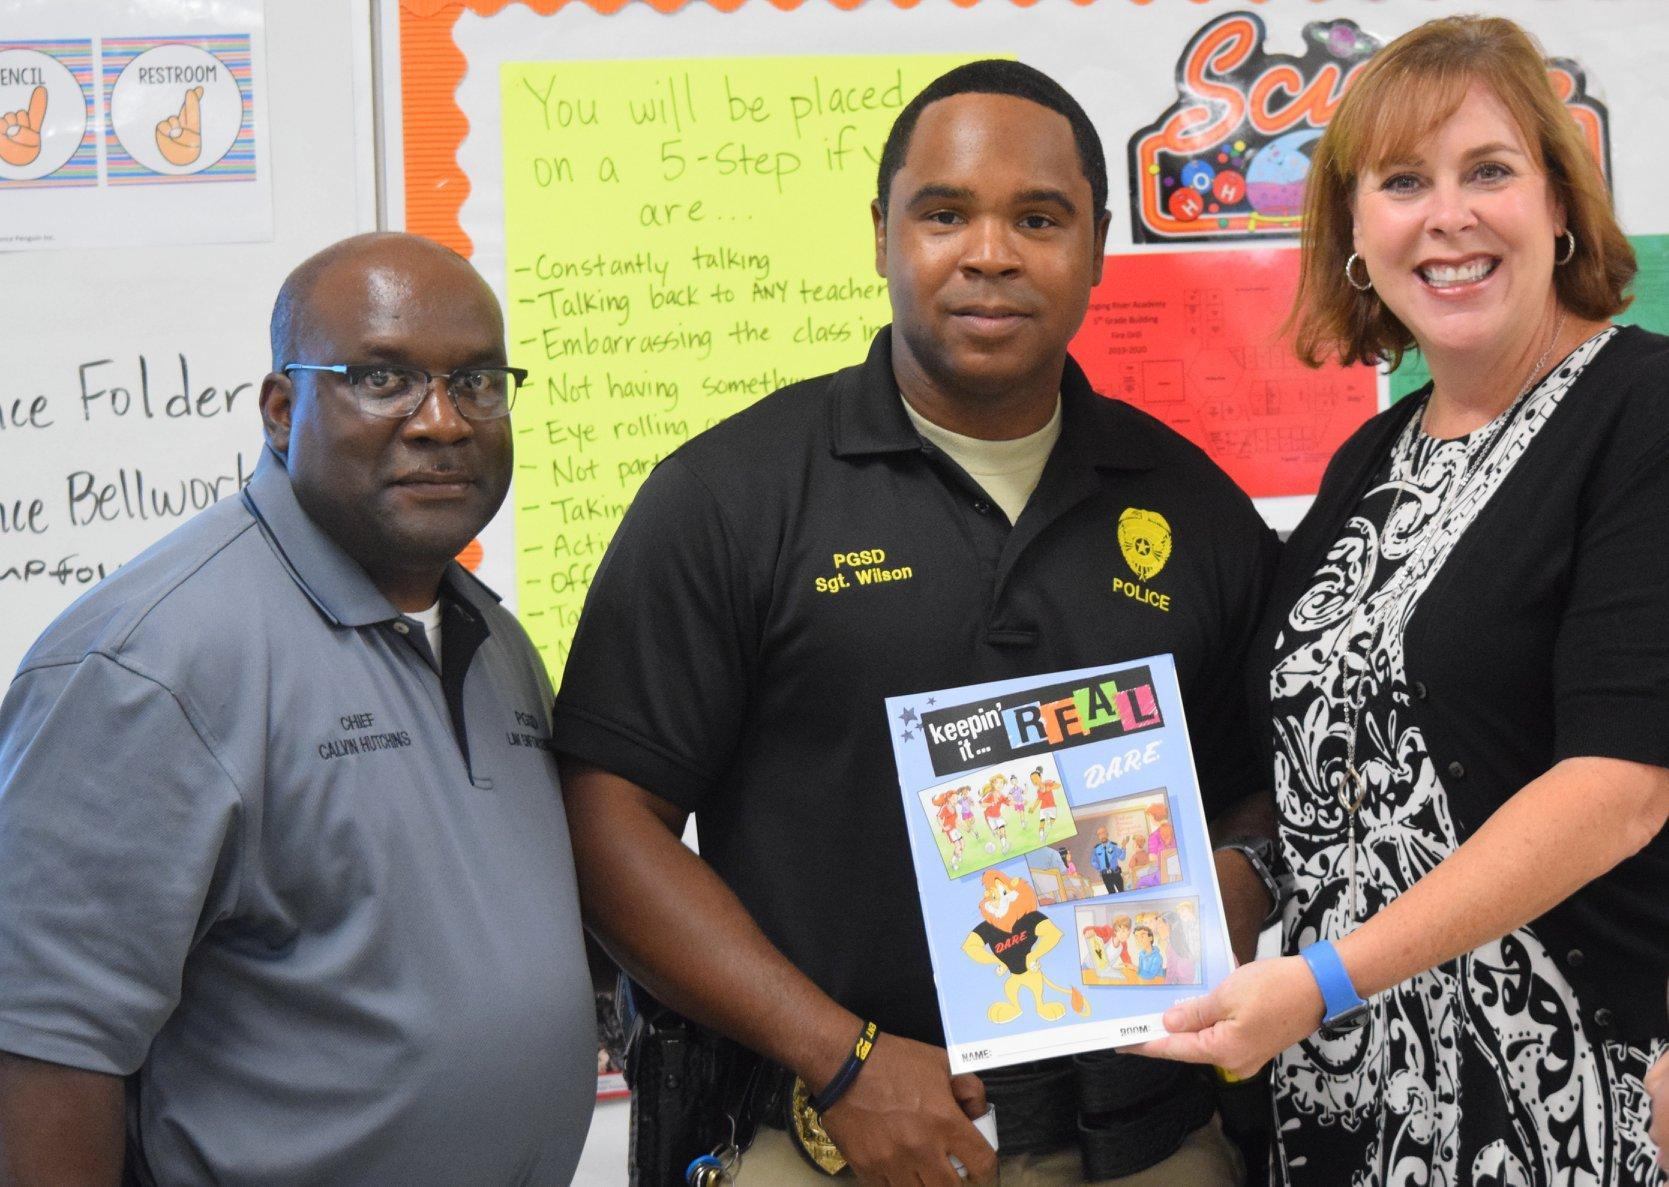 Chief Hutchins, Officer Wilson, Principal Rone